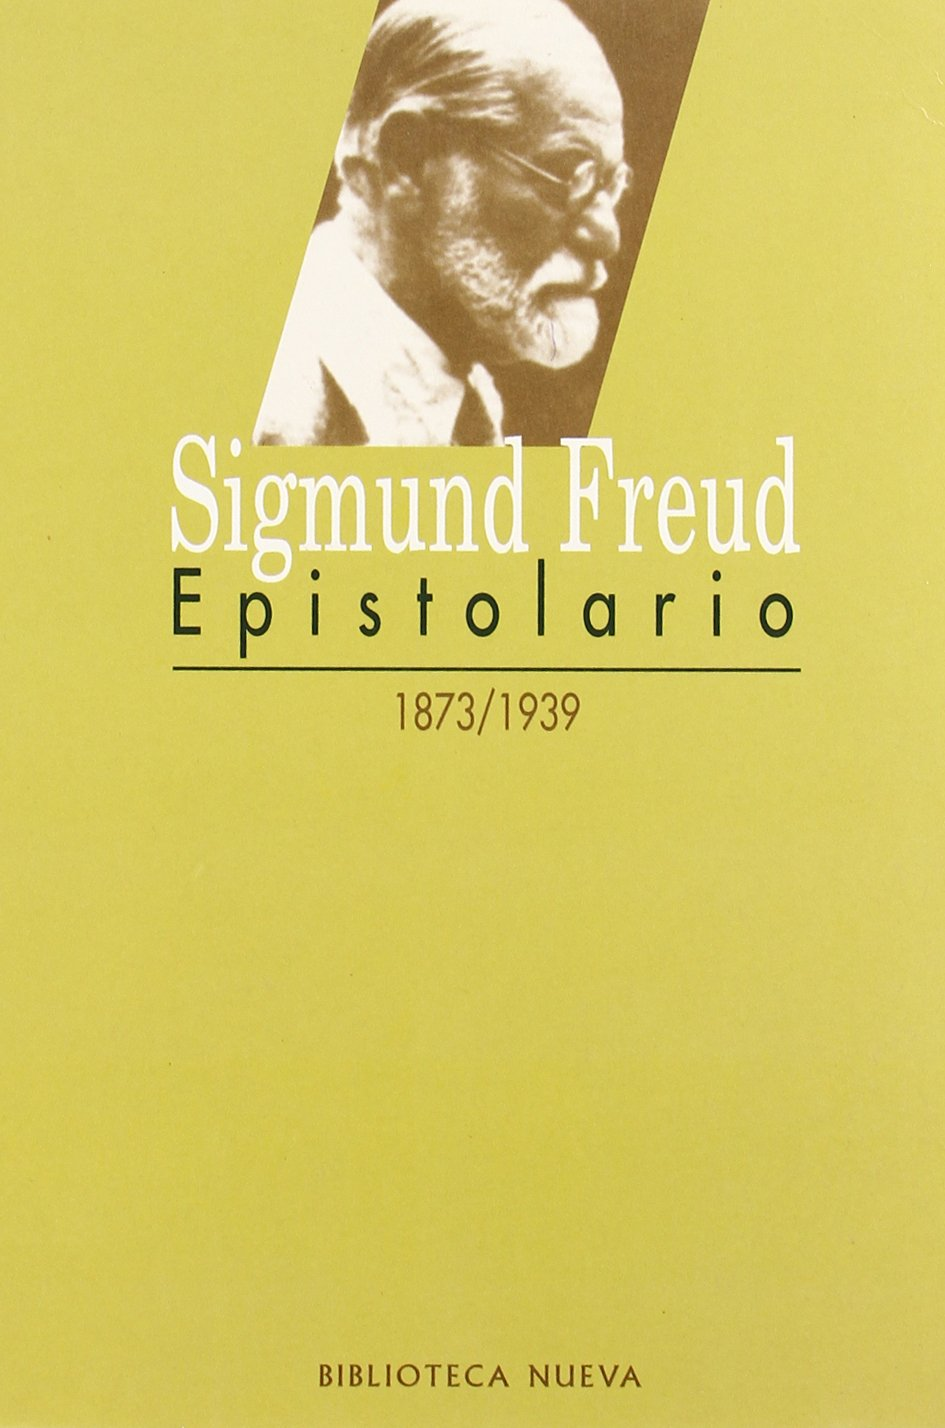 Epistolario de sigmund freud 1873 1939 9788470301124 amazon com books